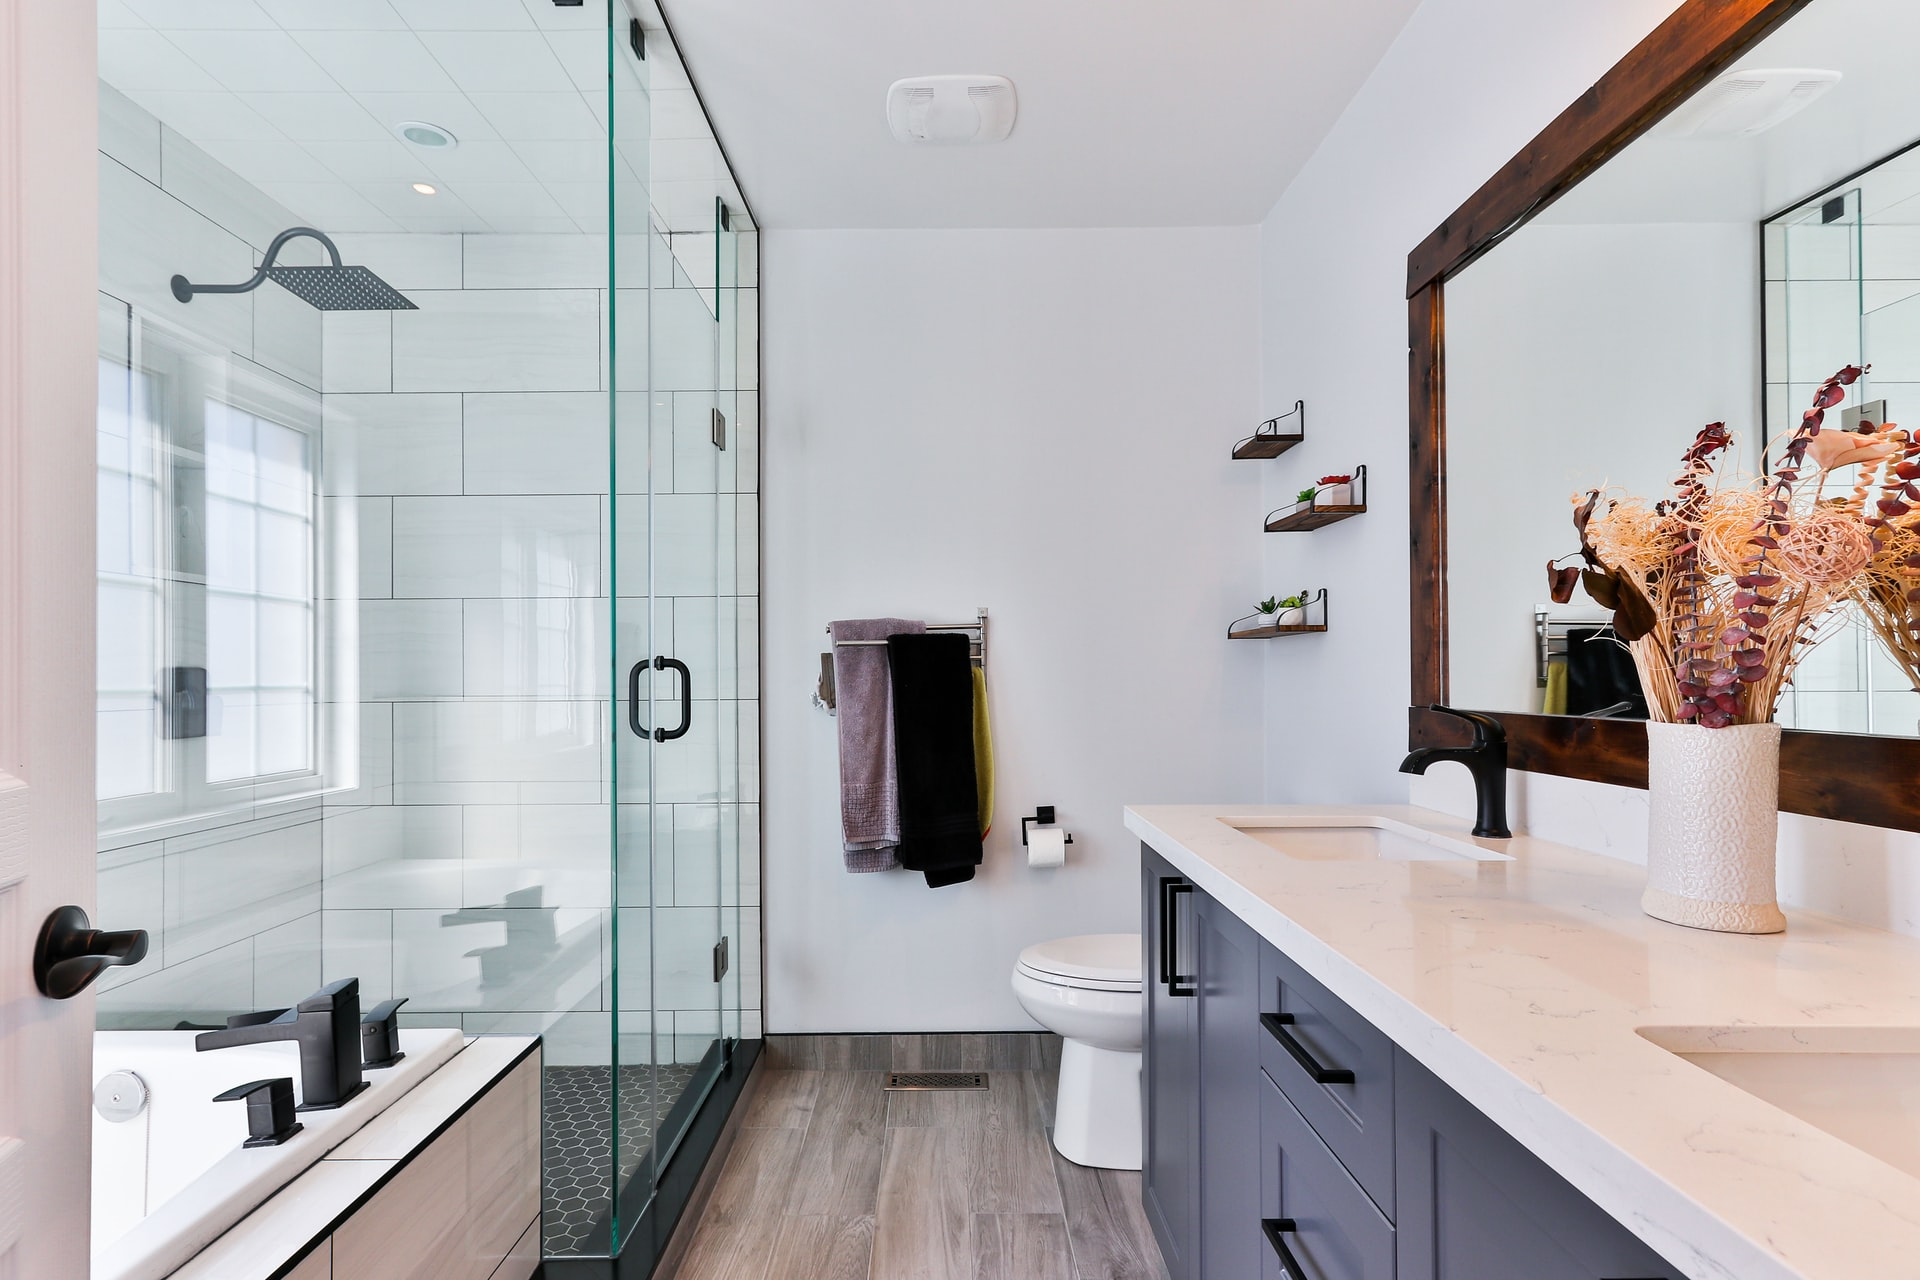 How To Effectively Make A Bathroom Look and Feel Better